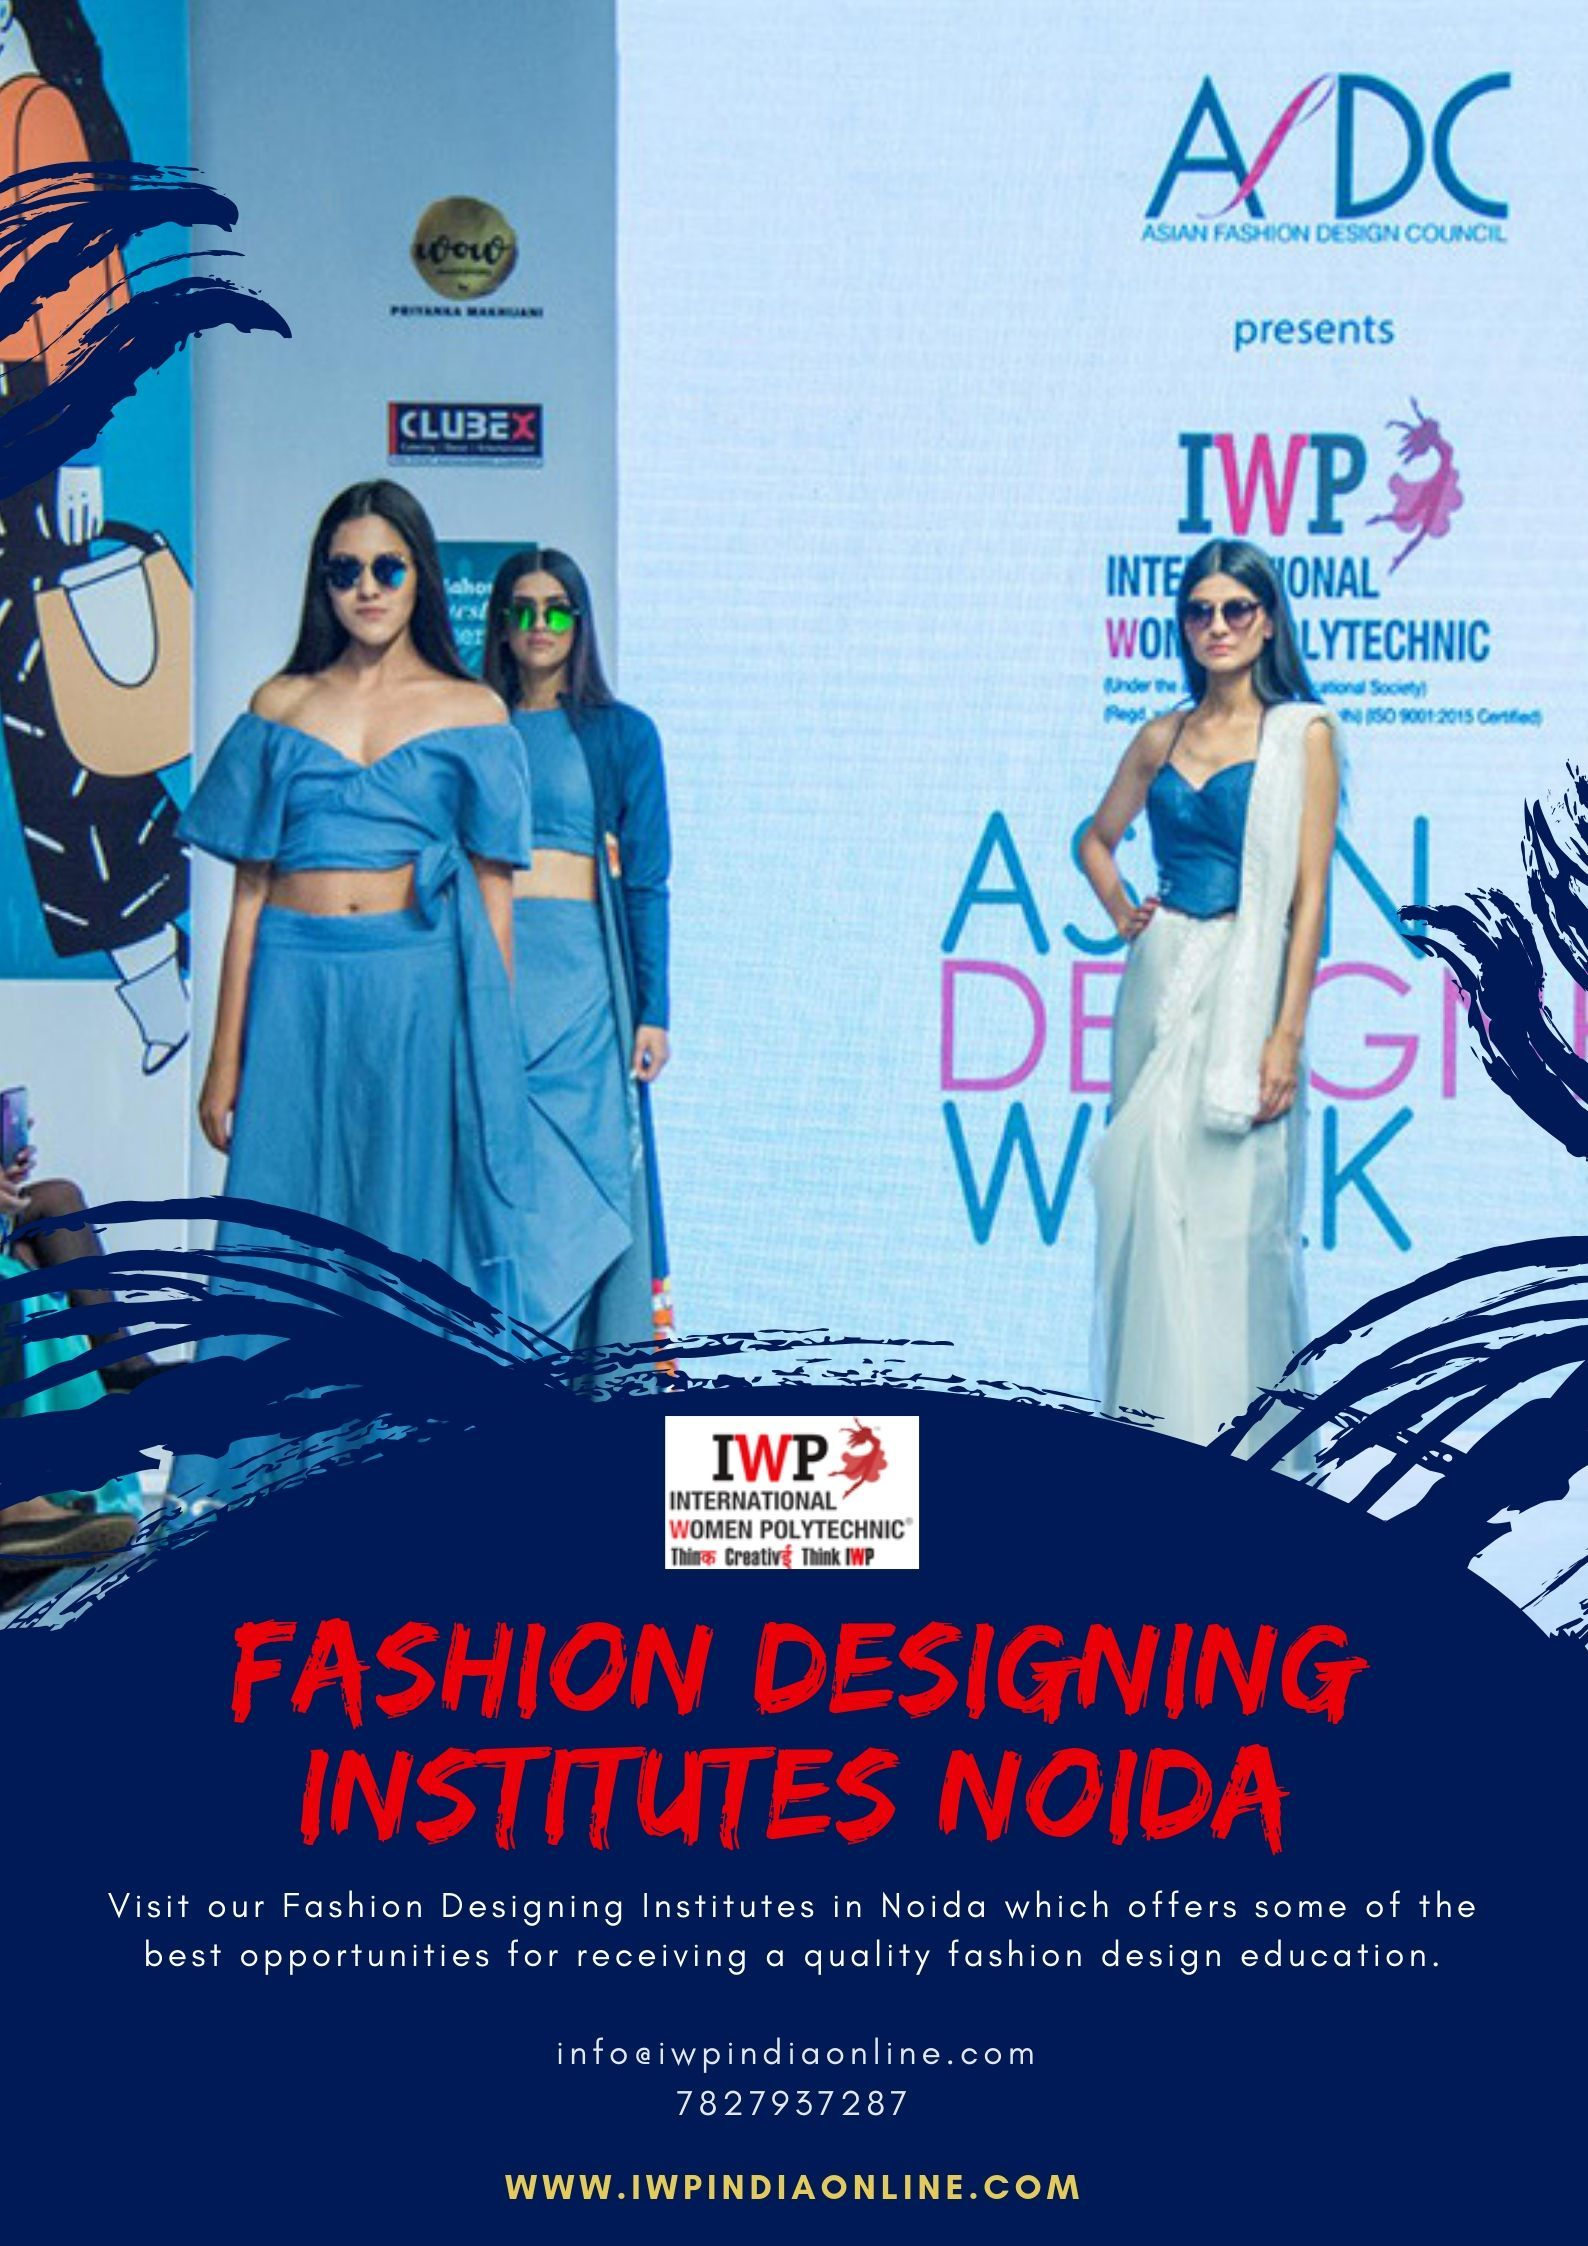 Fashion Designing Institutes Noida Fashion Designing Institute Fashion Designing Colleges Fashion Designing Course